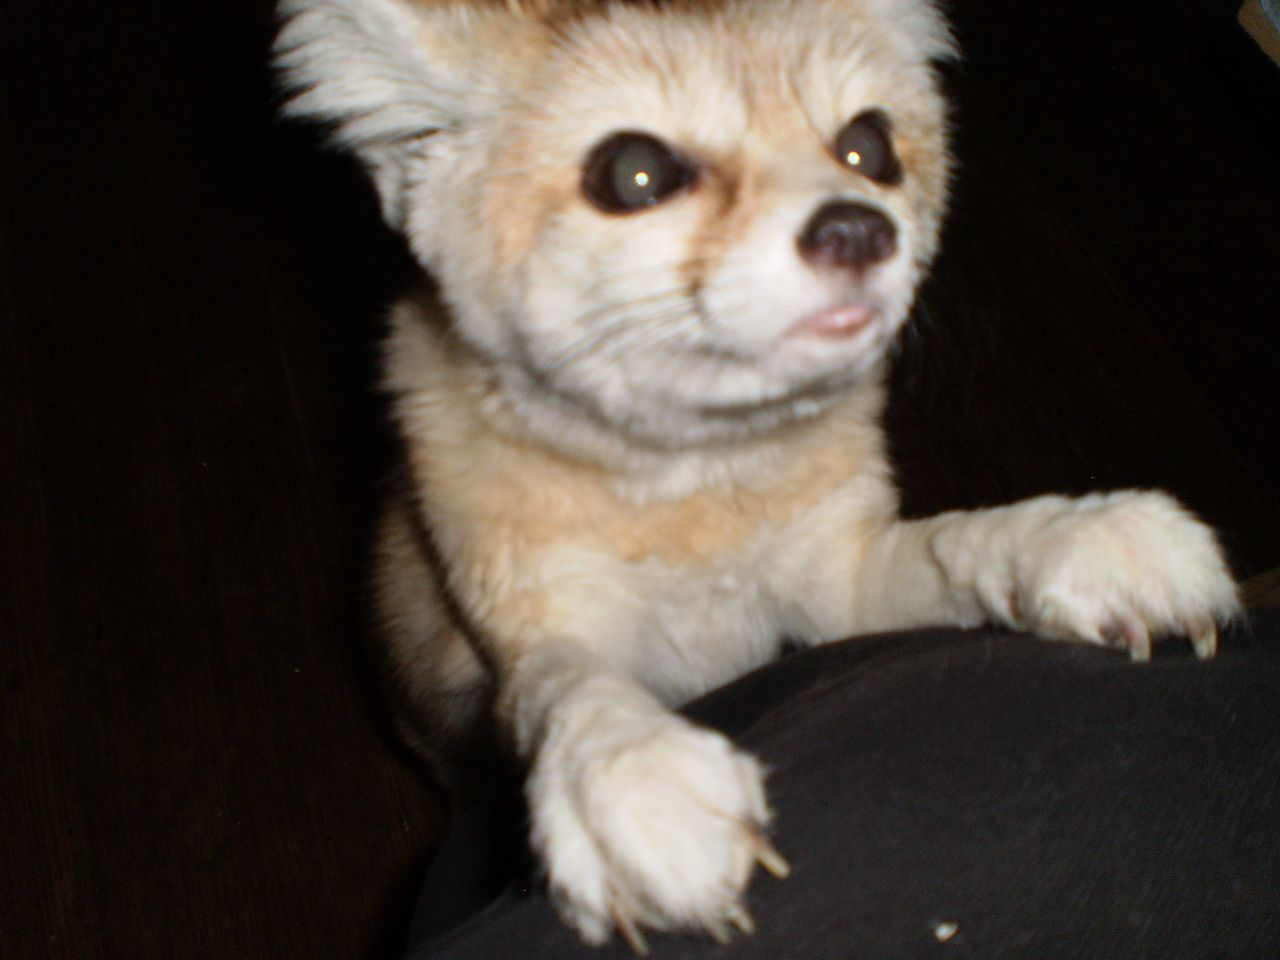 On this one Wiley is trying a cat impersonation. ;-) Wiley is one of 4 fennec foxes at Critter Camp Exotic Pet Sanctuary.